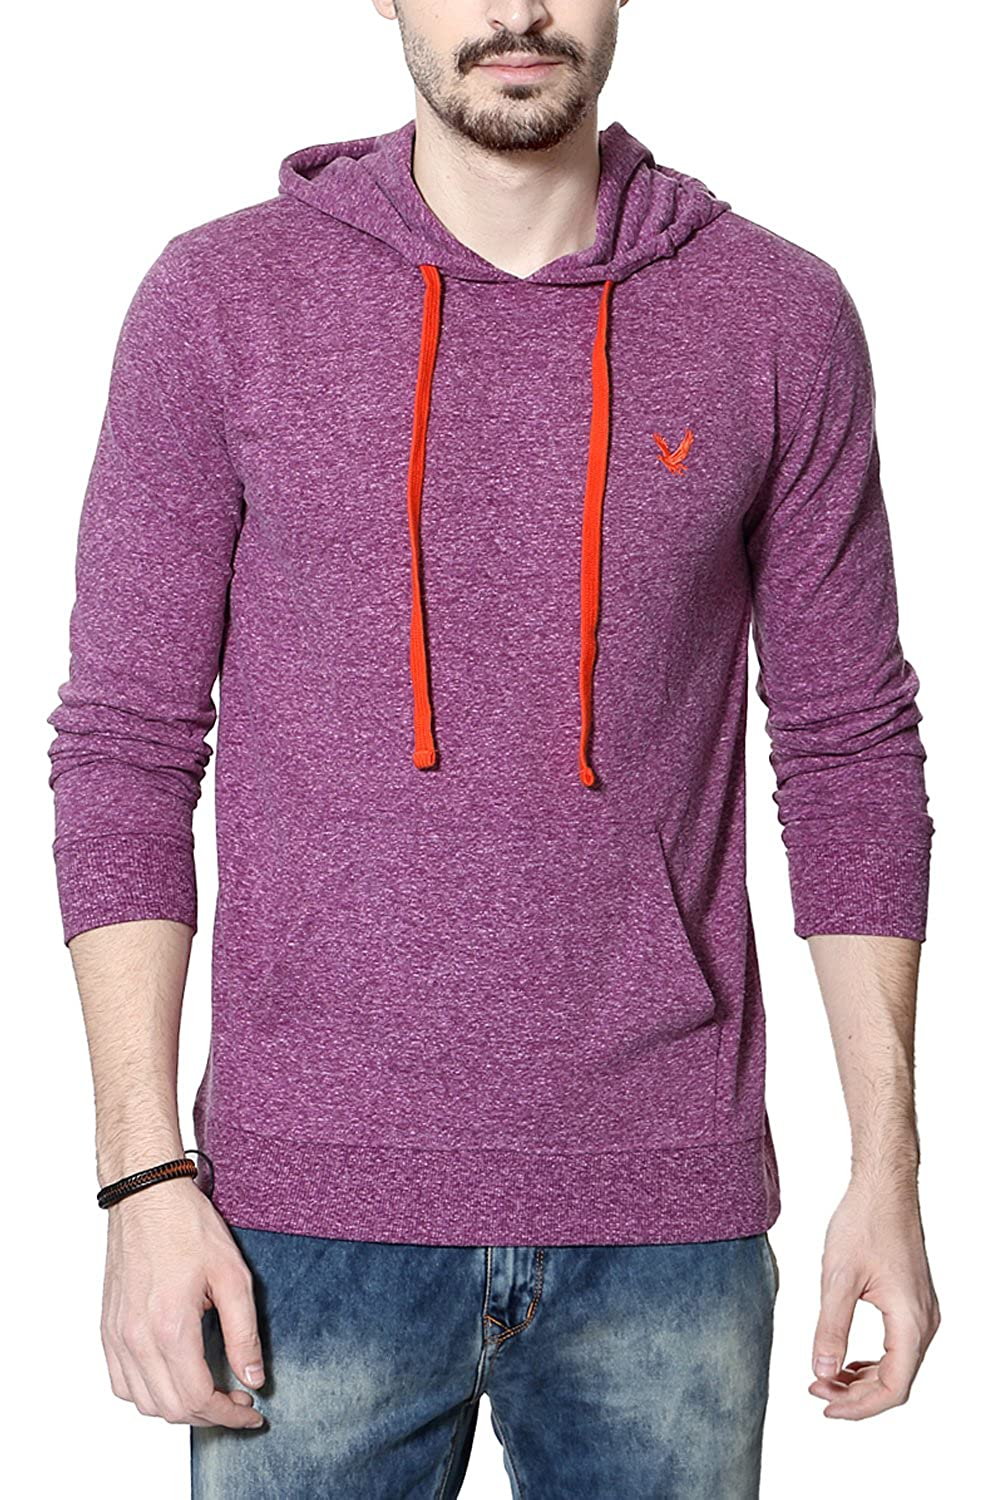 Flat 50% off Pantaloons Men's Clothing By Amazon | Urban Eagle by Pantaloons Men Cotton Sweatshirt @ Rs.649